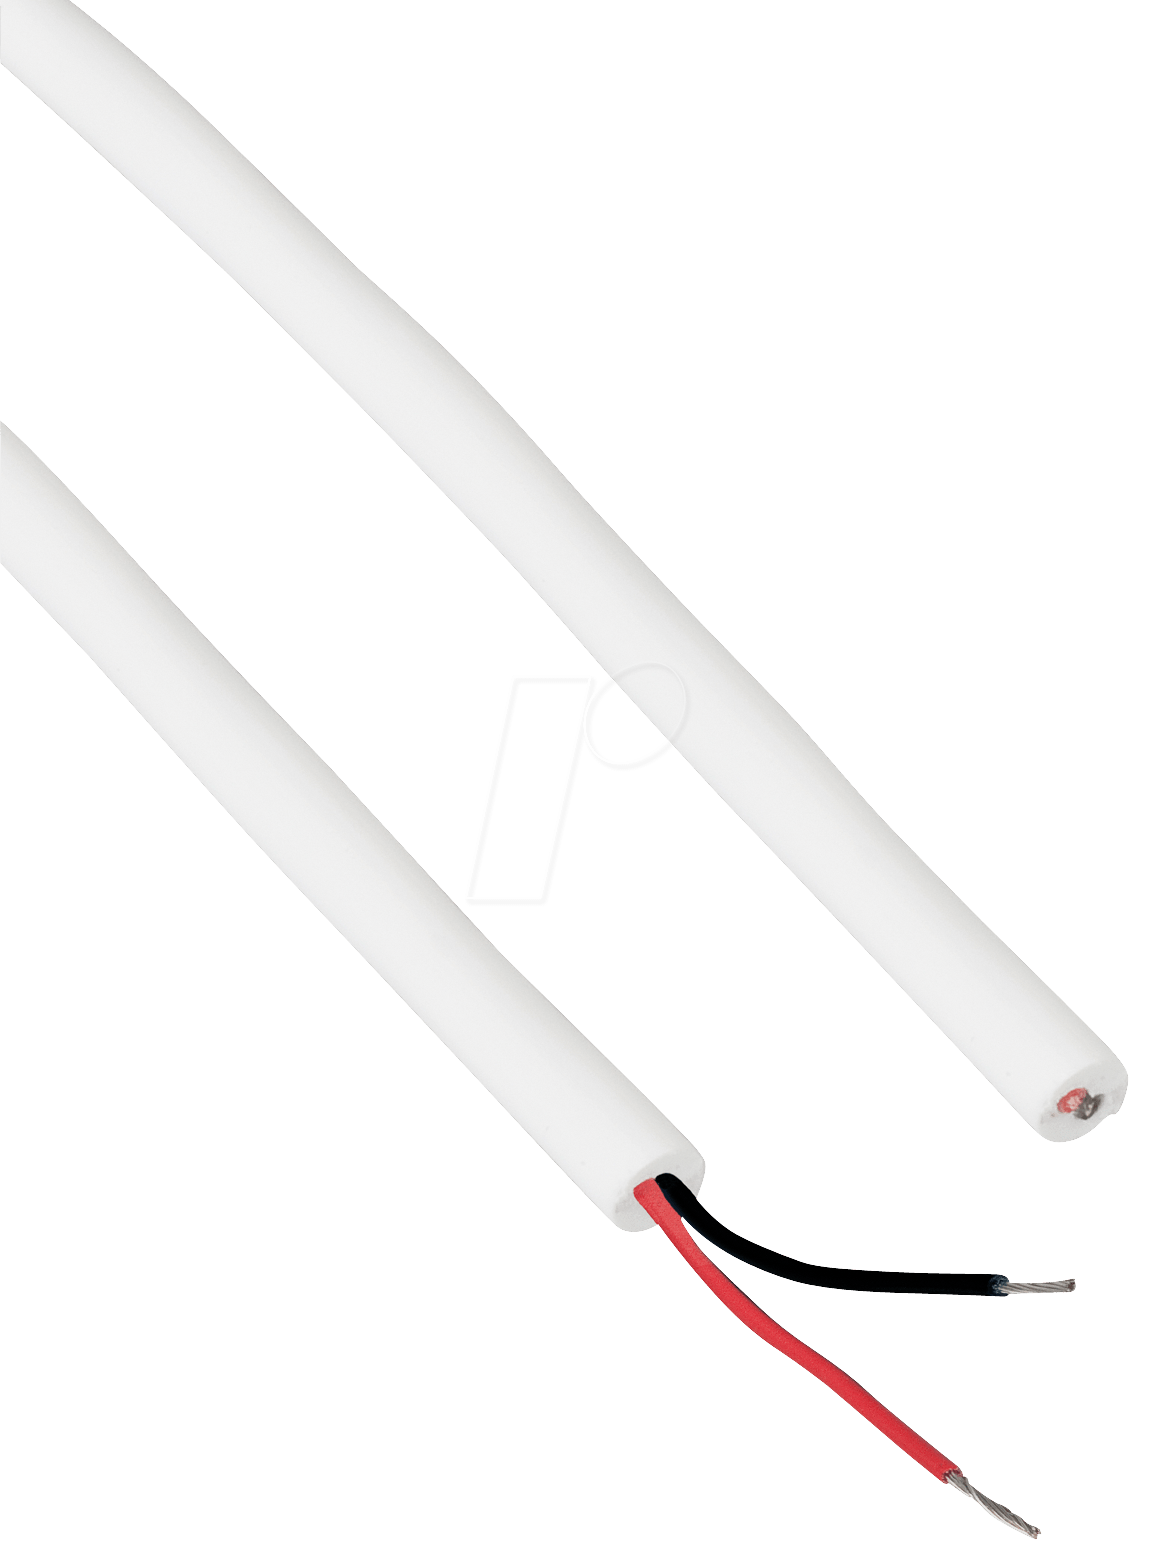 led kabel ab led light strip 2 pin outdoor cable 1 m at reichelt elektronik. Black Bedroom Furniture Sets. Home Design Ideas